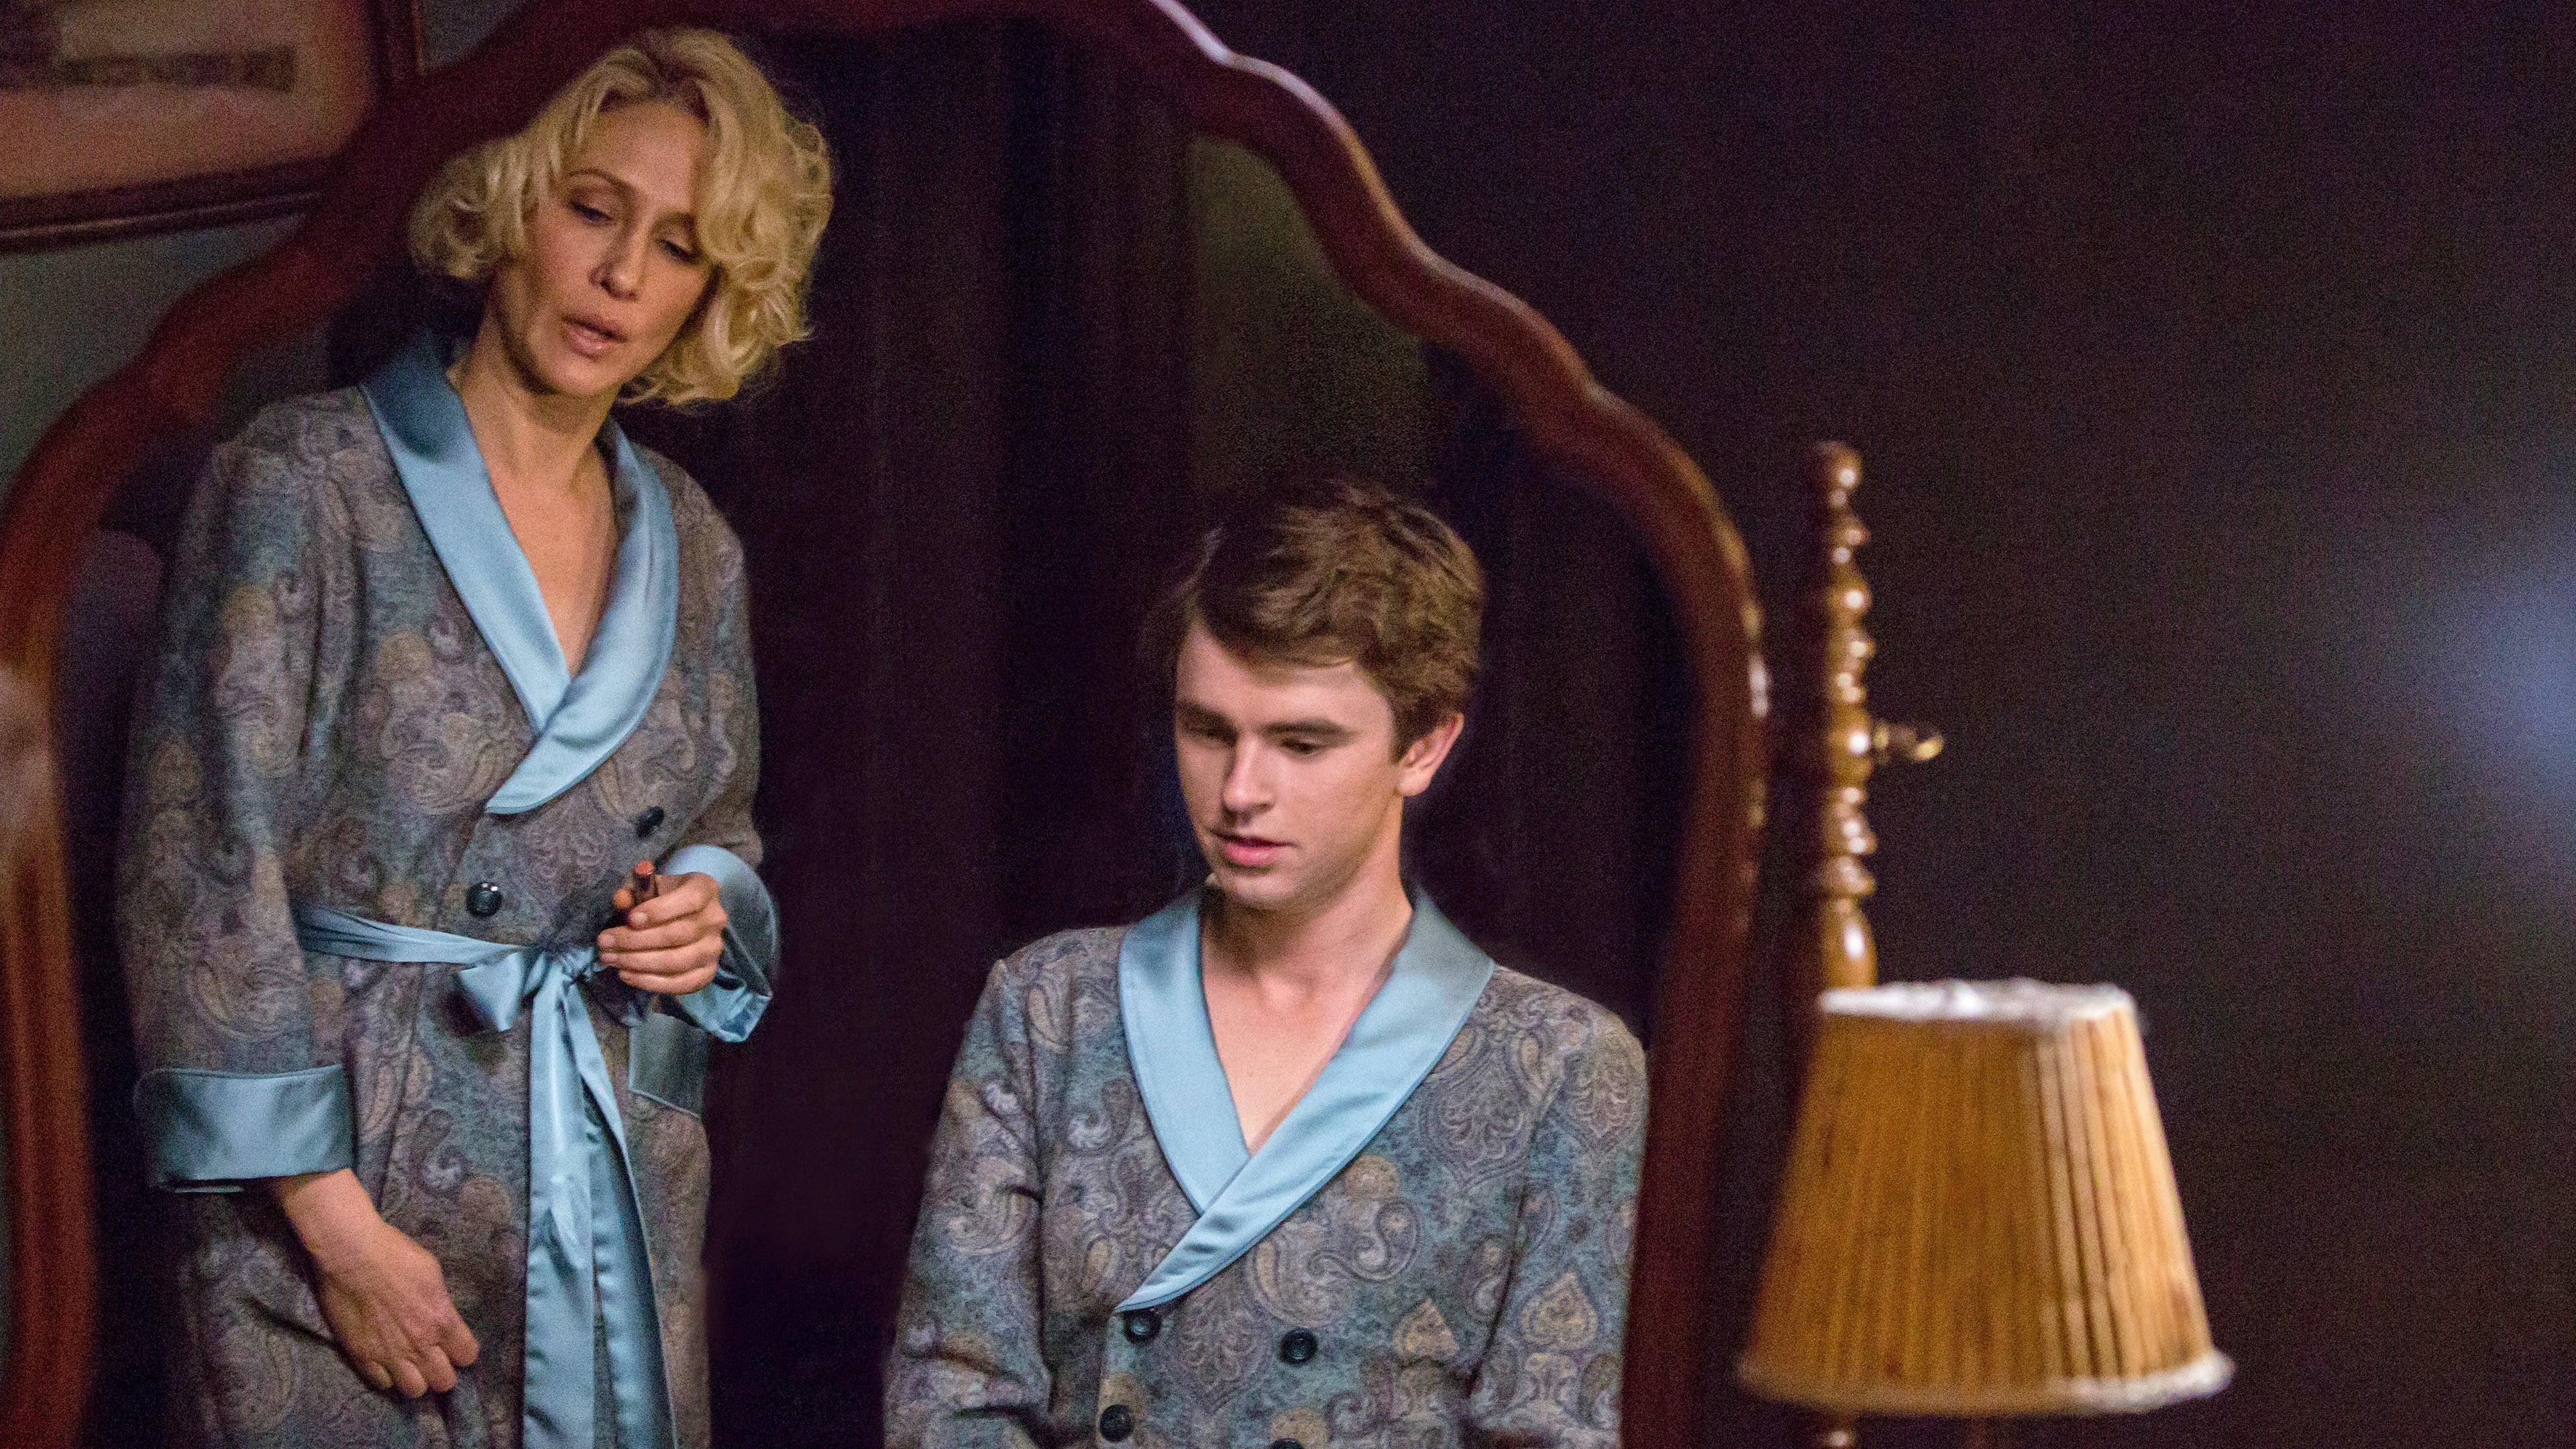 bates motel 2013 saison 4 pisode 1 filmstreaming hd com. Black Bedroom Furniture Sets. Home Design Ideas